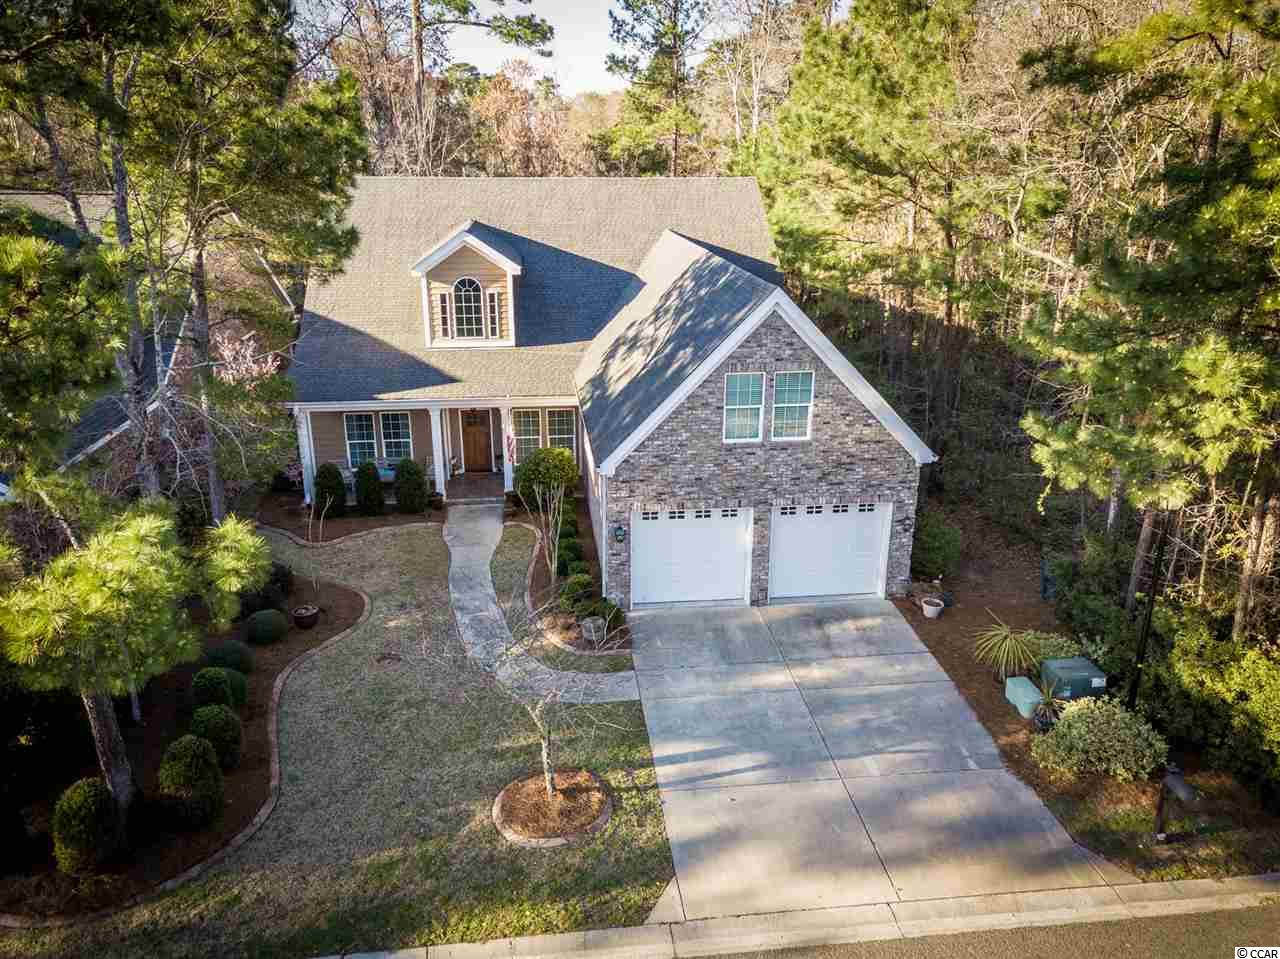 Single Family Home for Sale at 65 Pintail 65 Pintail Pawleys Island, South Carolina 29585 United States